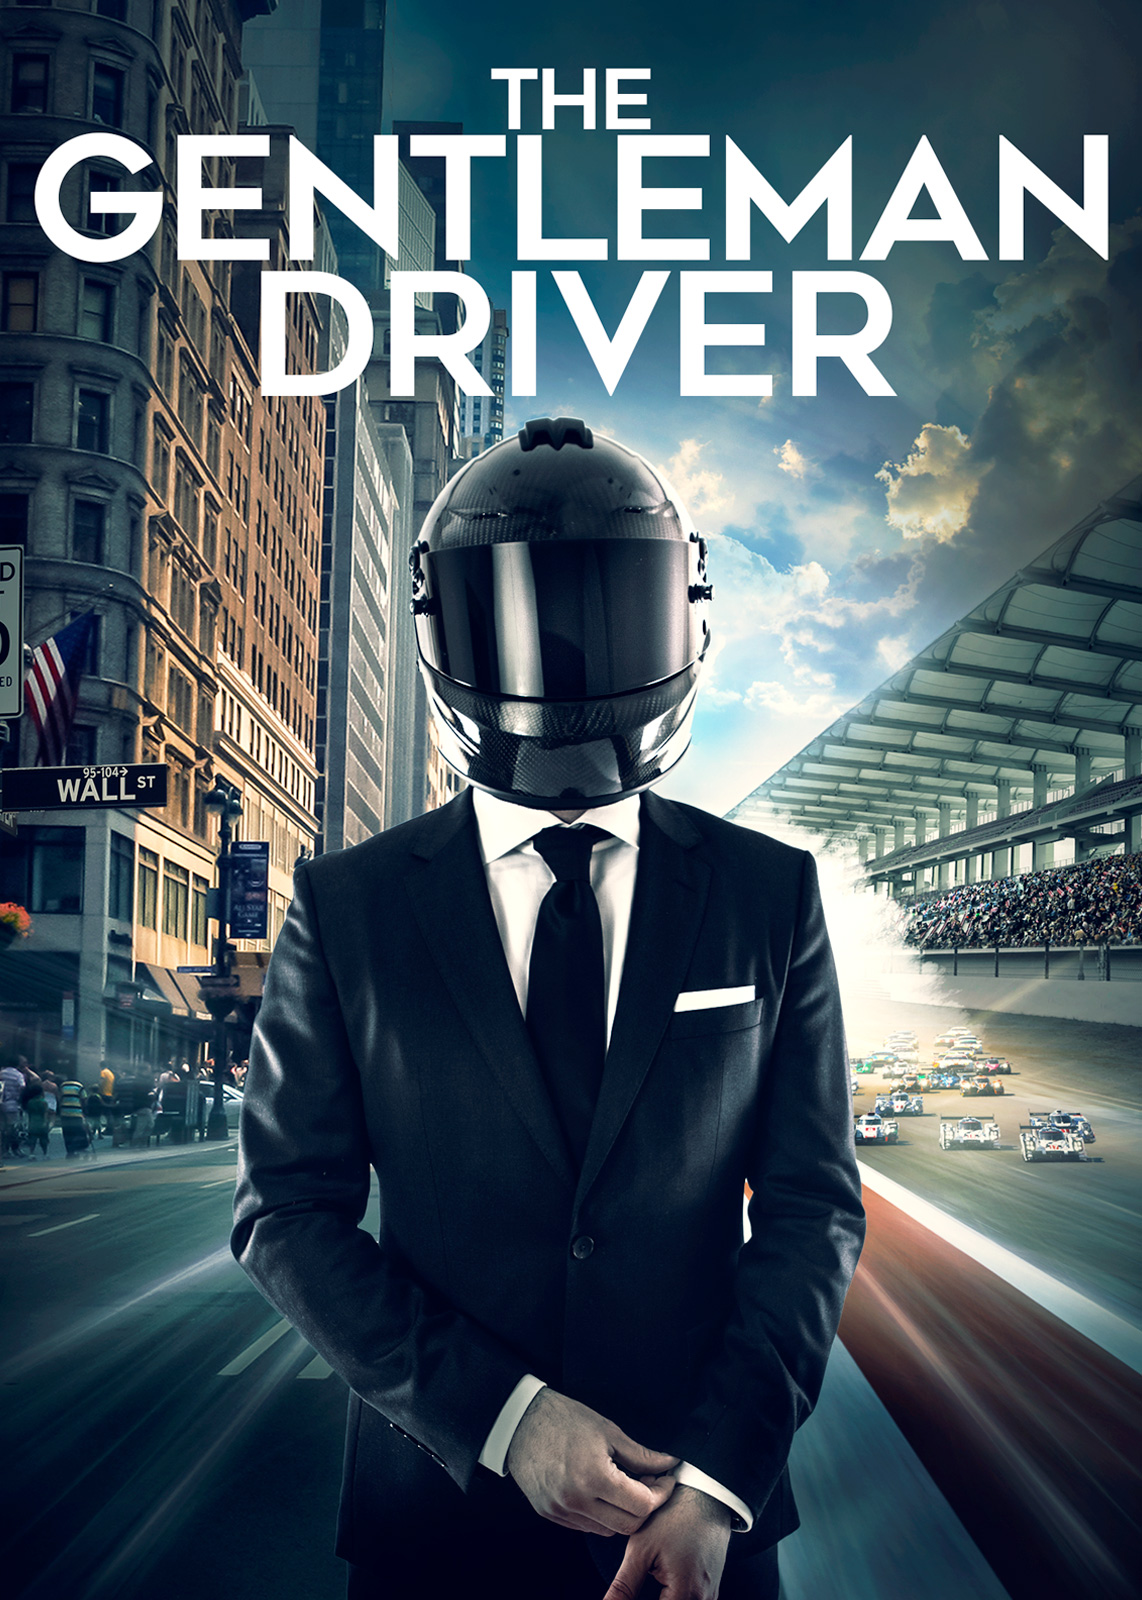 The Gentleman Driver Film, Now available on NETFLIX worldwide!